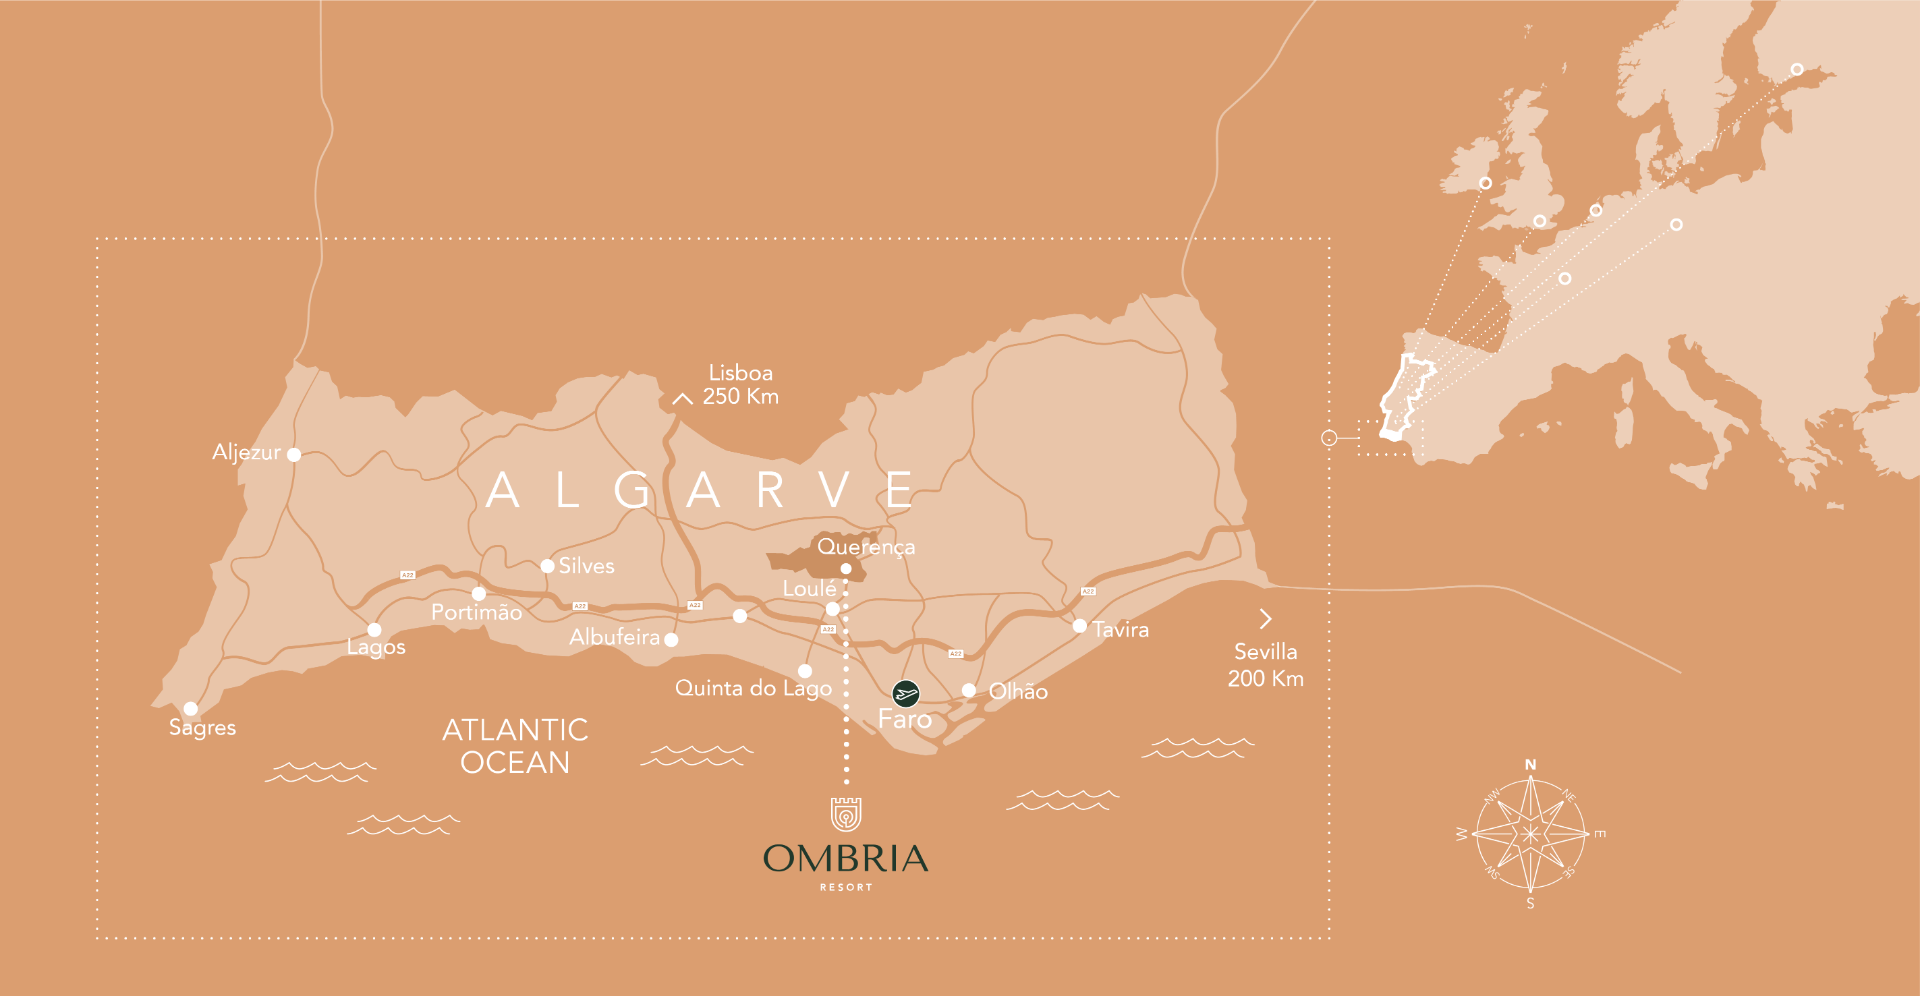 Map of the Algarve showing the location of Ombria Resort